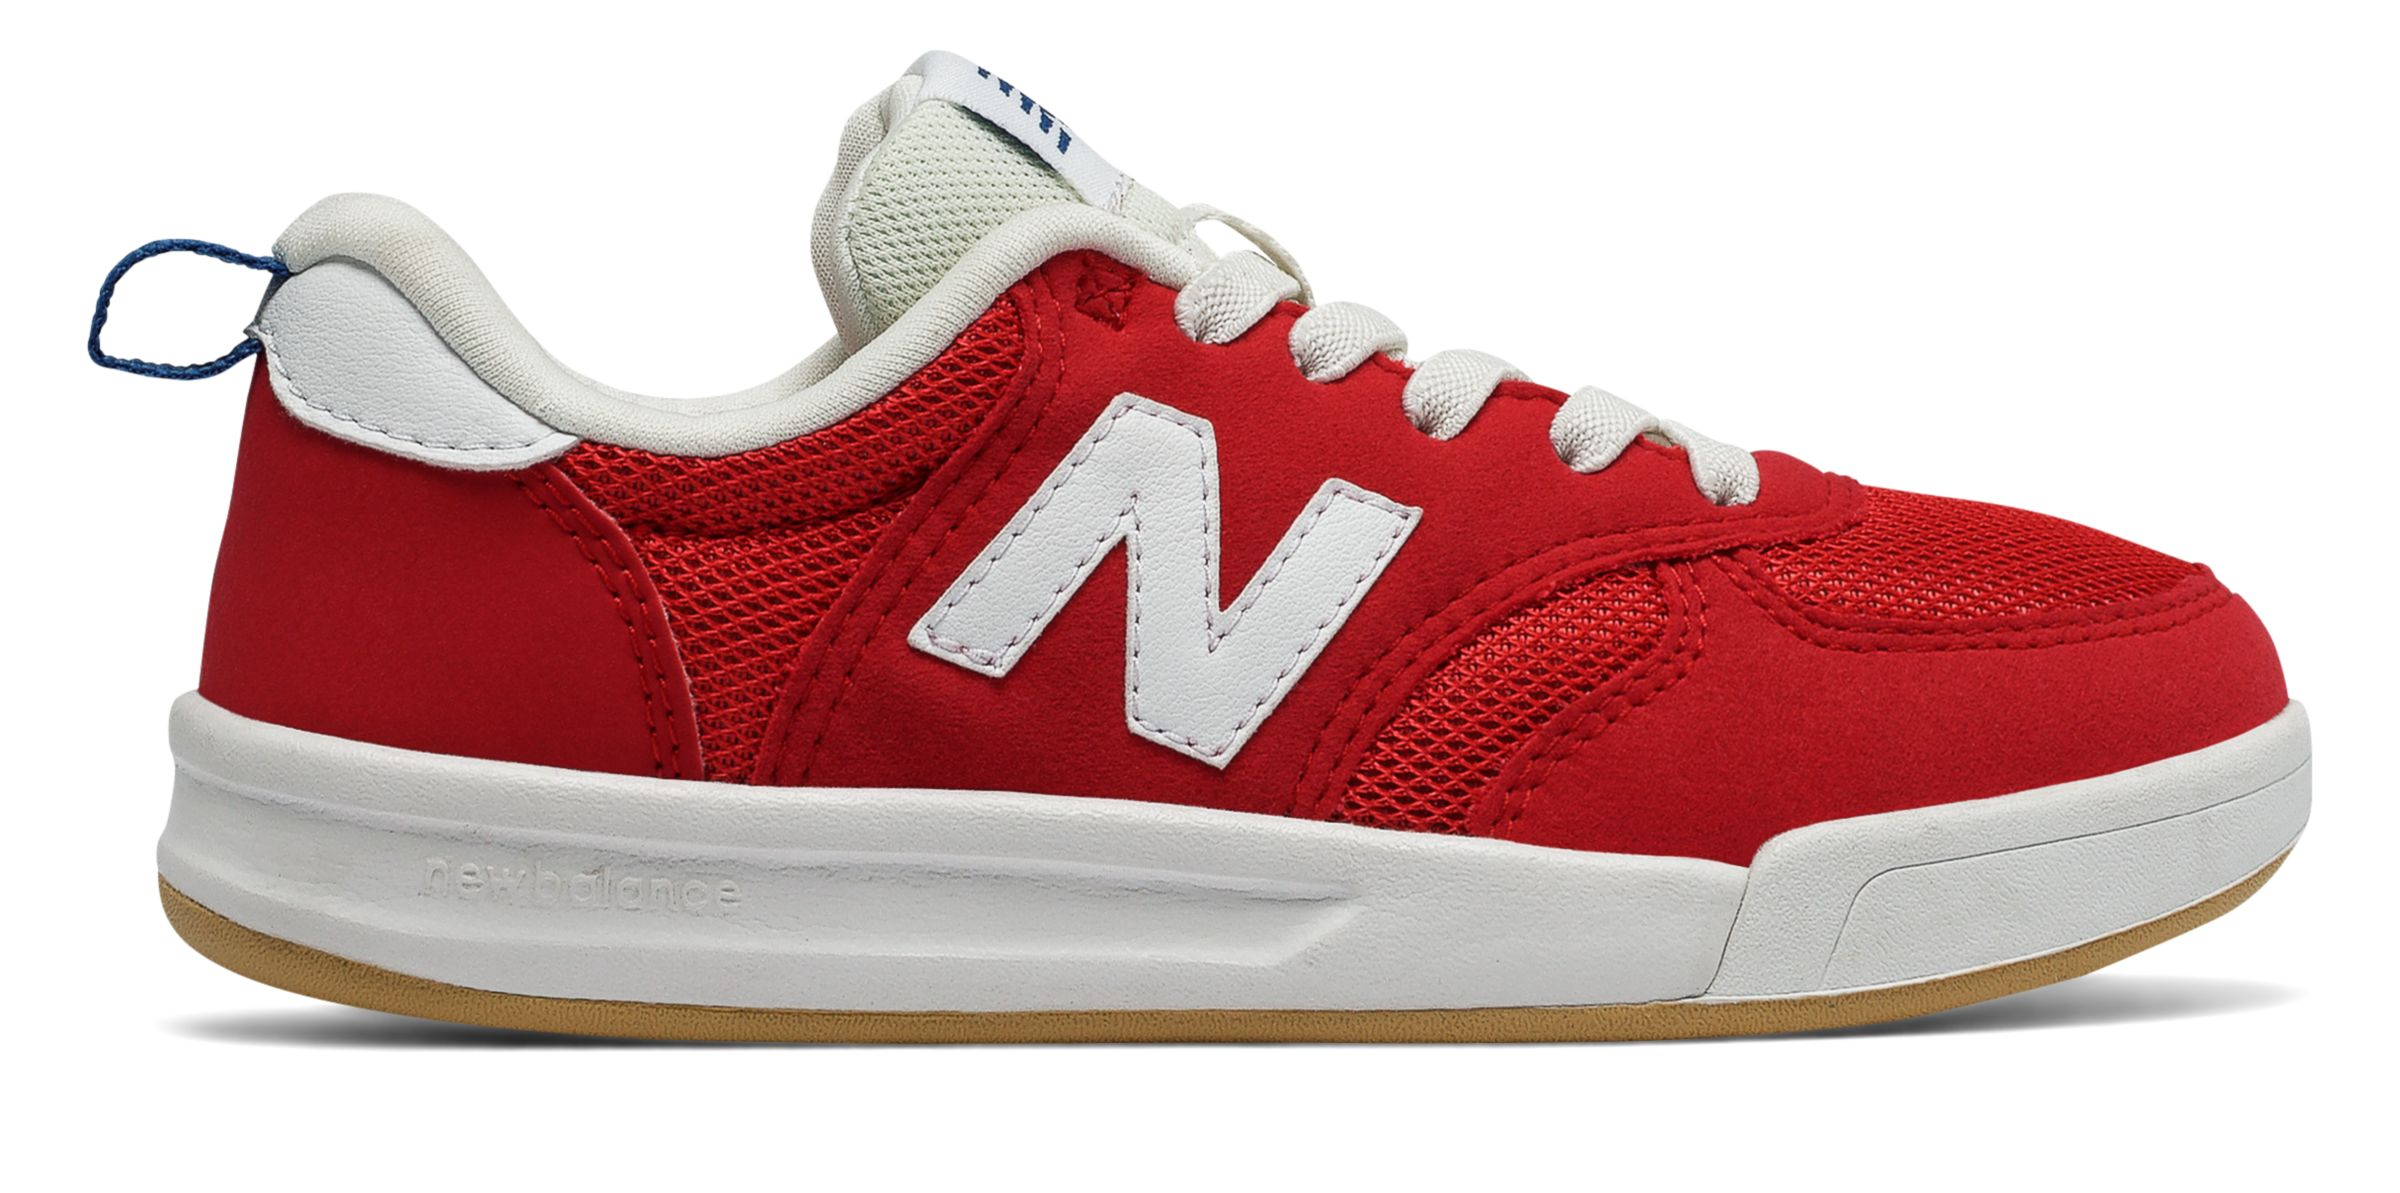 NB 300 New Balance, Really Red with White